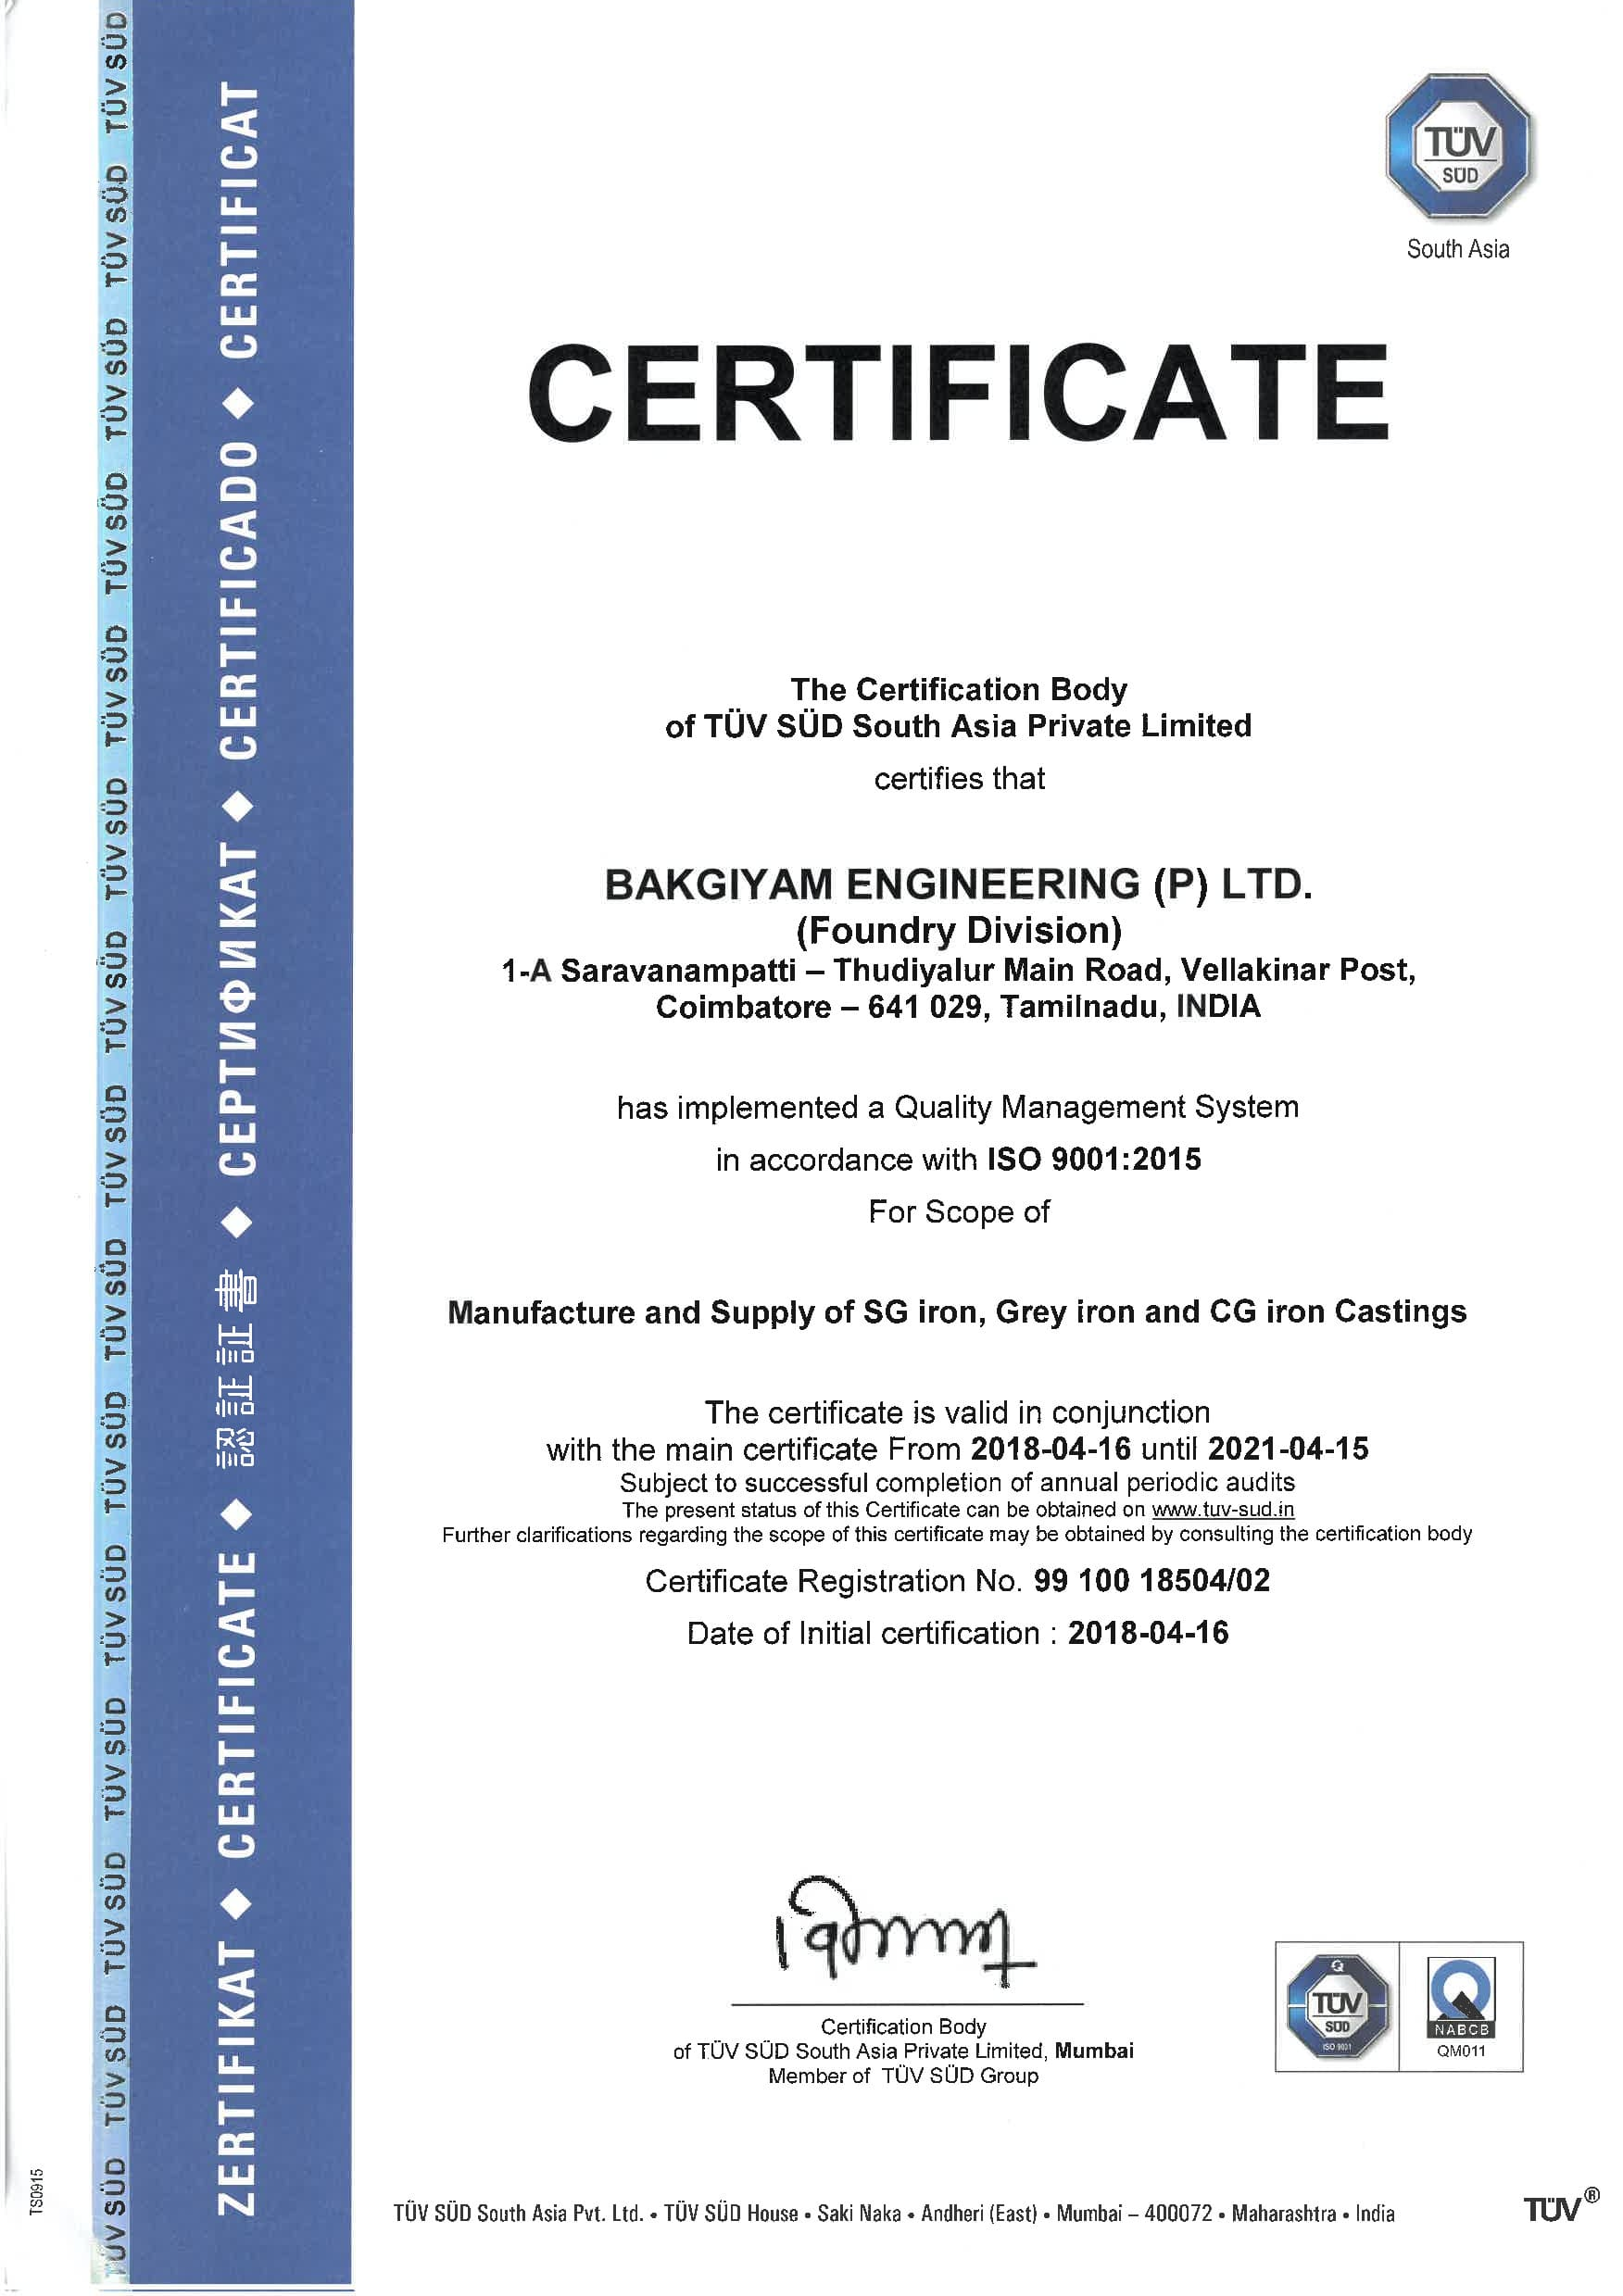 Foundry Division Certificate - Manufacture and supply SG iron, Grey iron, CG iron casting